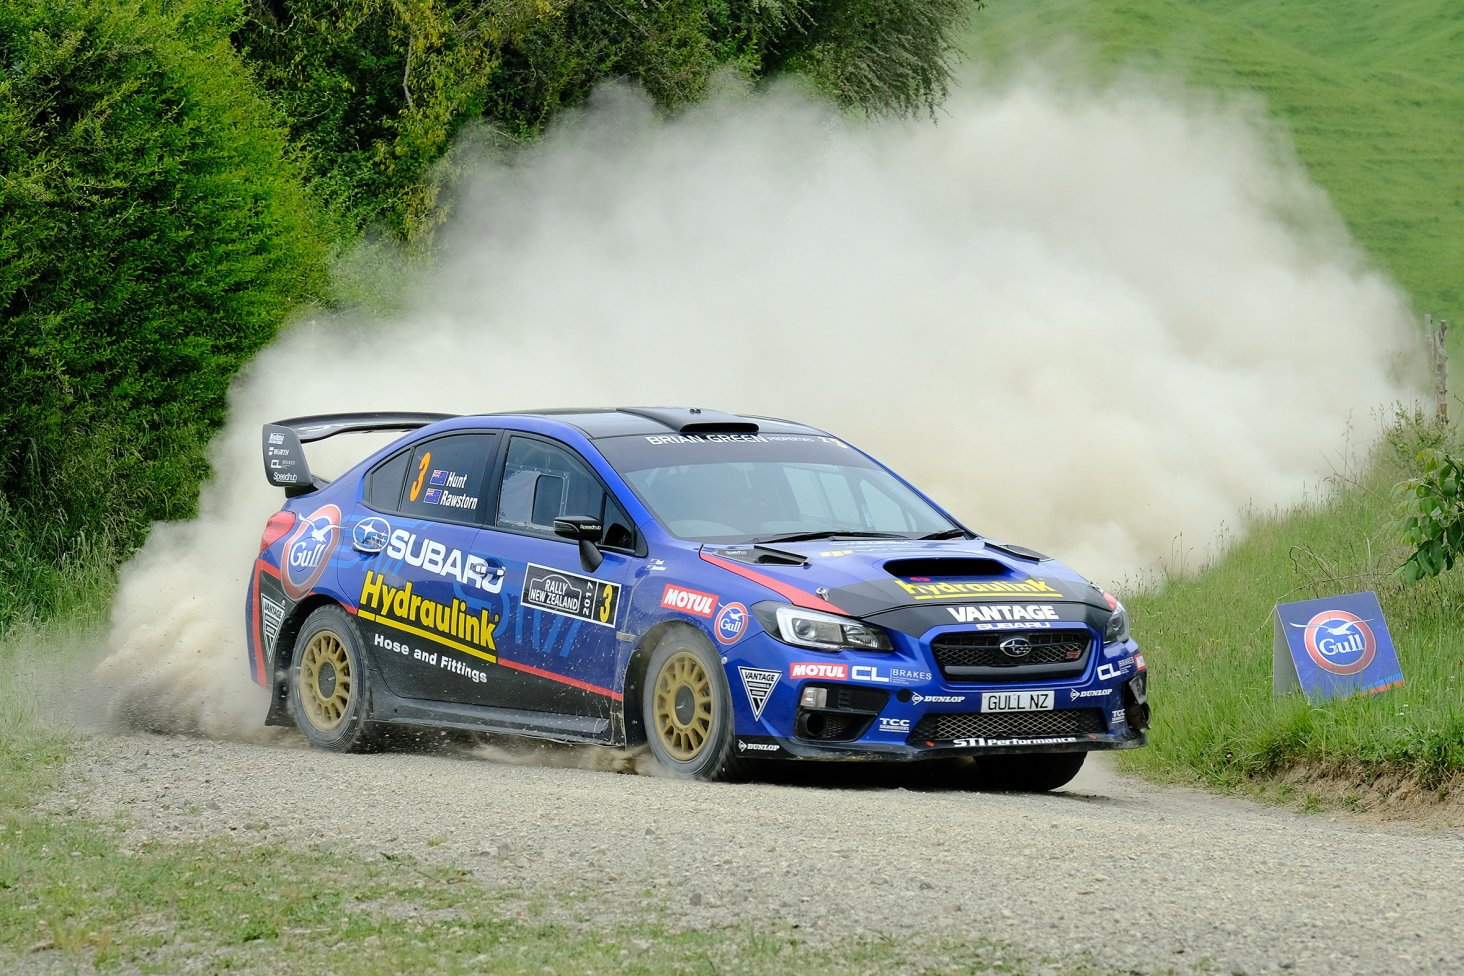 Ben Hunt and Tony Rawstorn helped Subaru win the Manufacturer's Championship in the Subaru WRX STi at the Tauranga-based Rally New Zealand this weekend.  PHOTO: GEOFF RIDDER.